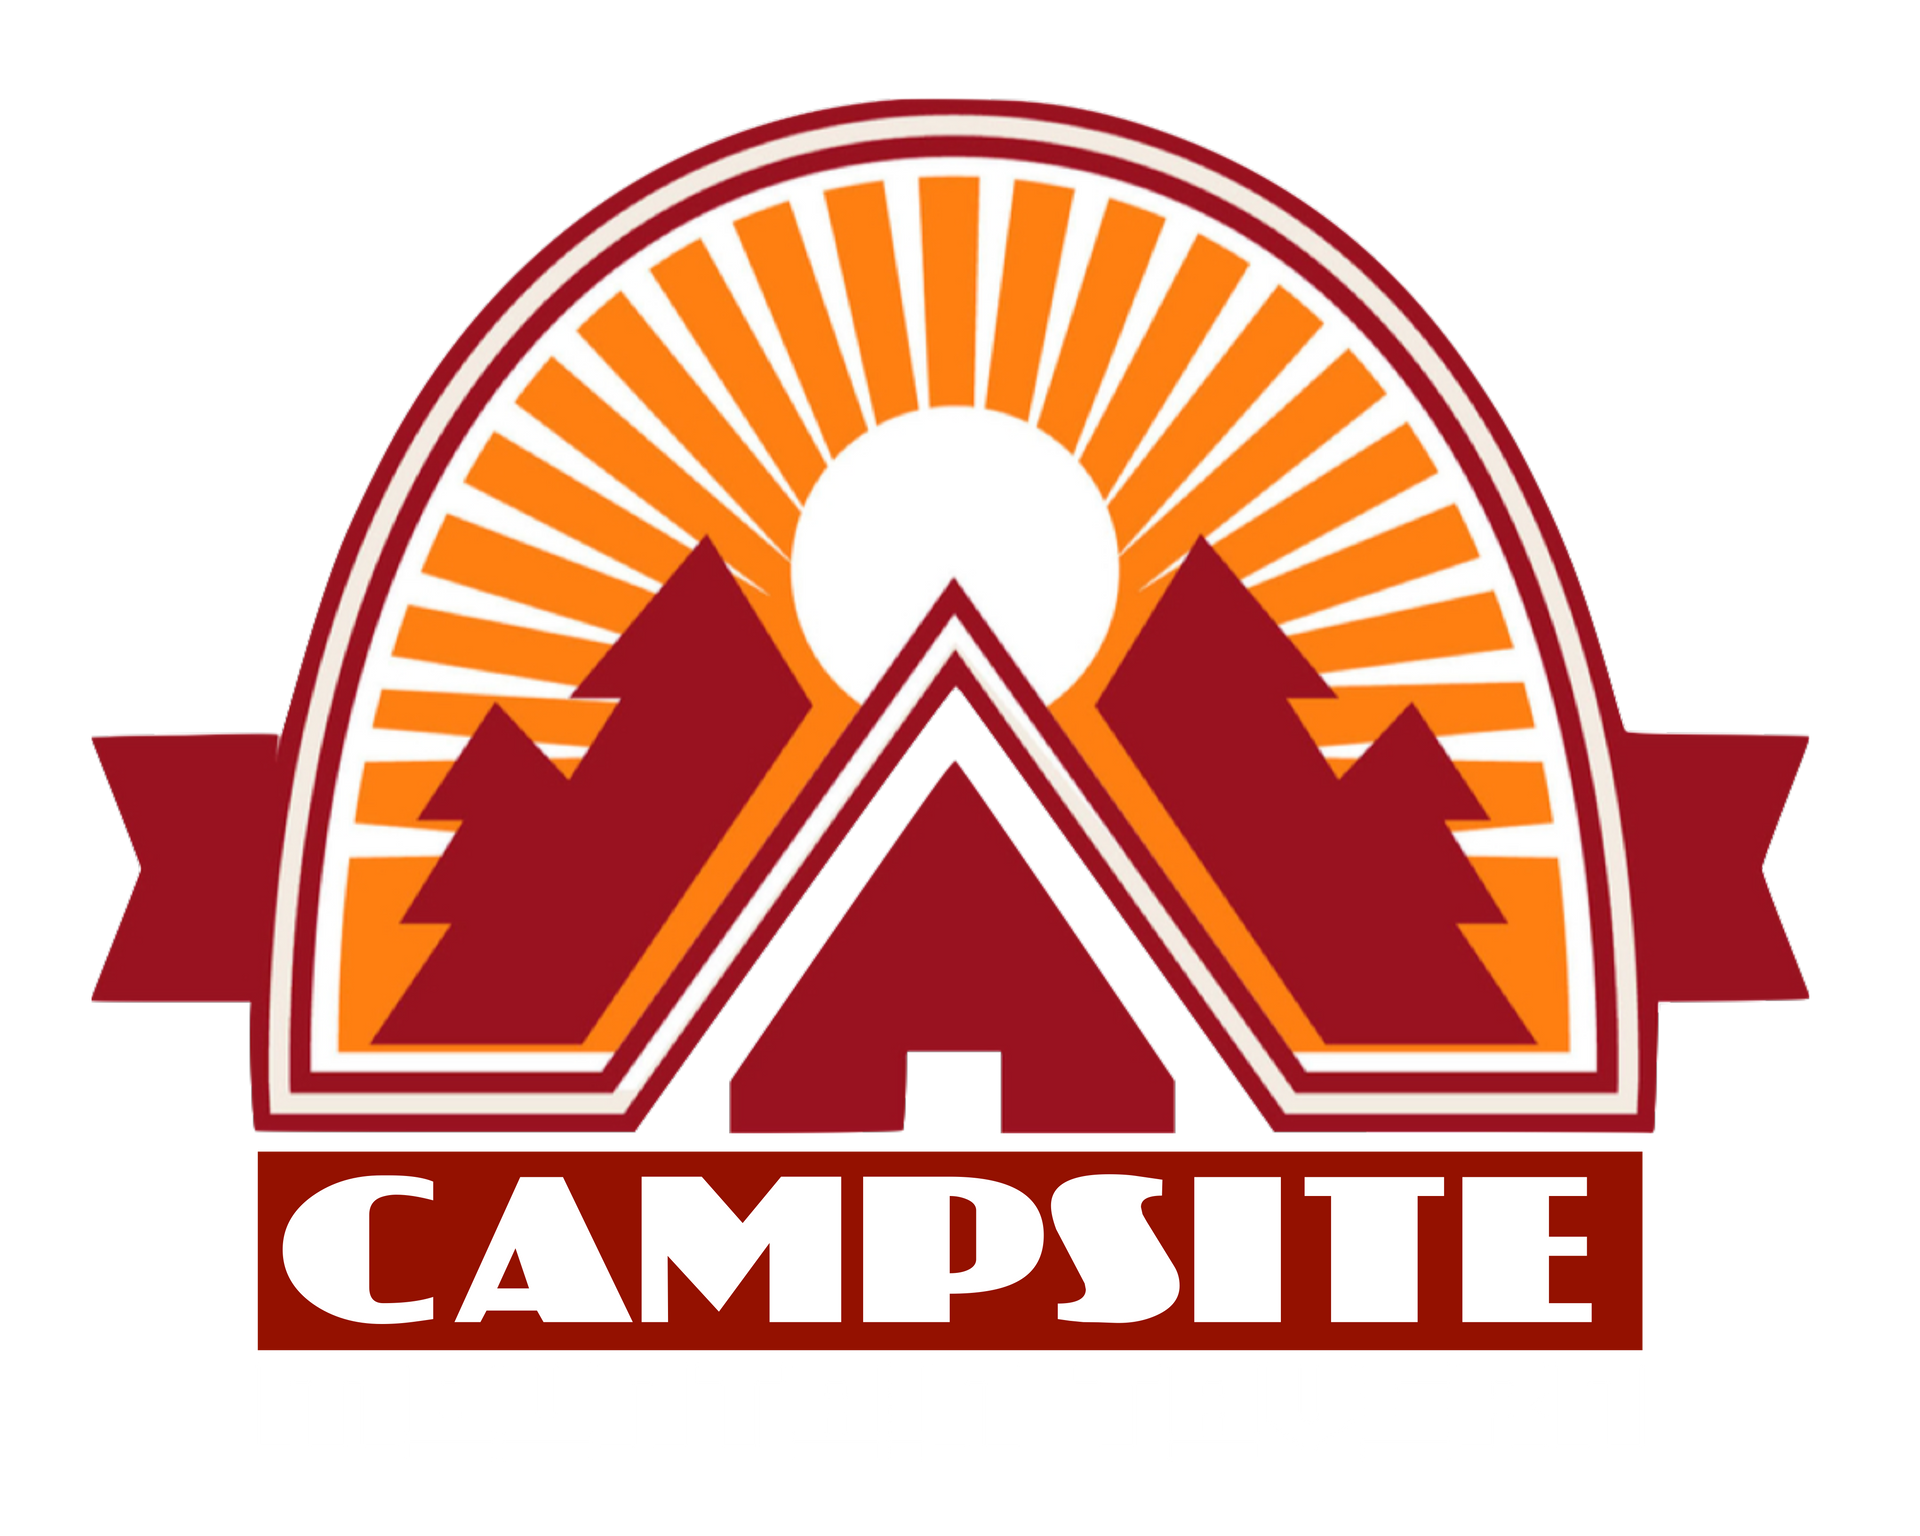 Campsite Mountain Tavern